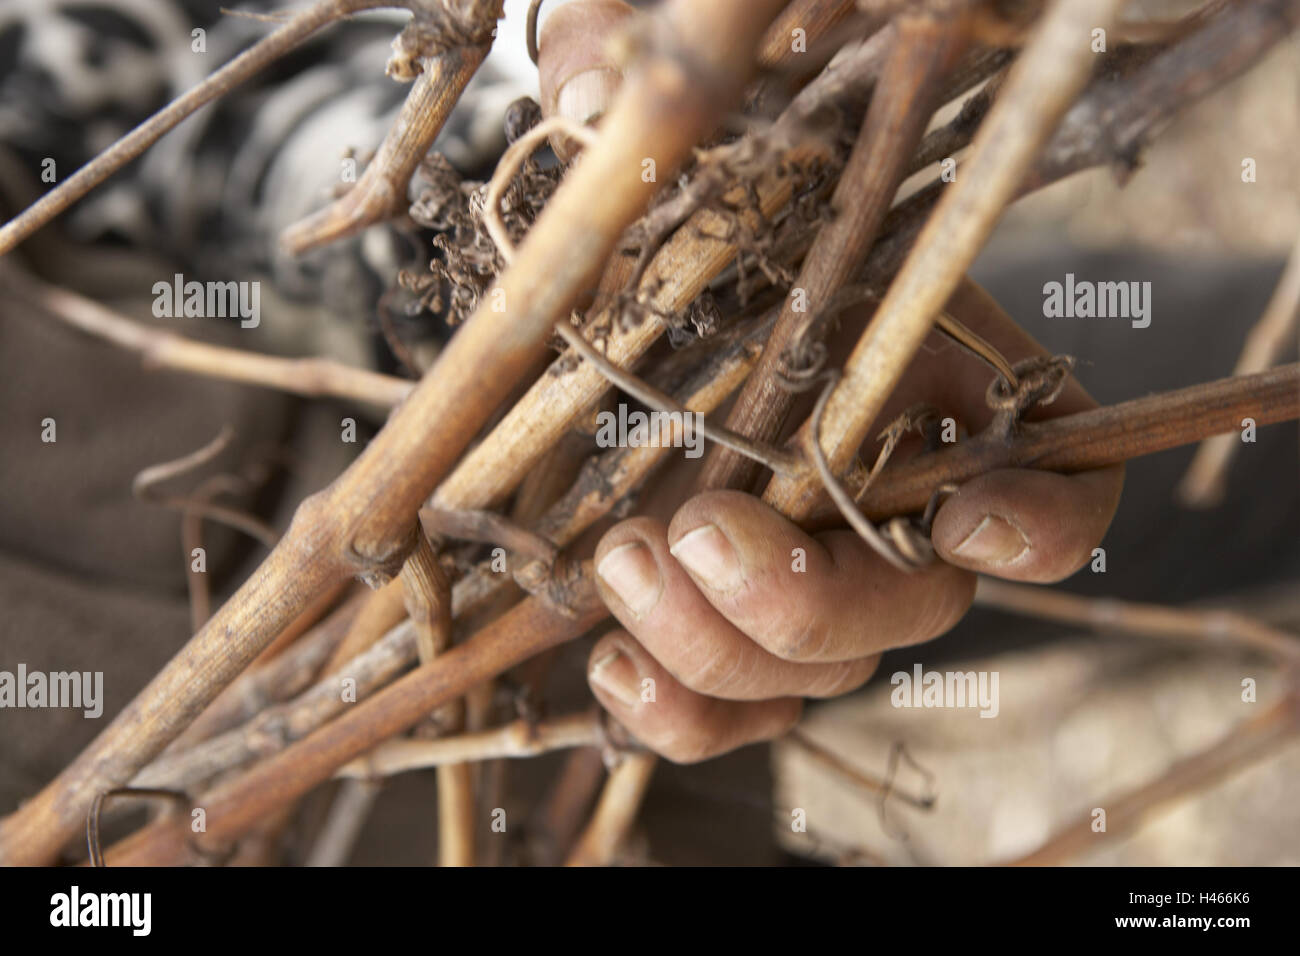 Man, hands, detail, branches, hold, Sancerre, France, winegrower, viticulturist, work, occupation, agriculture, Stock Photo